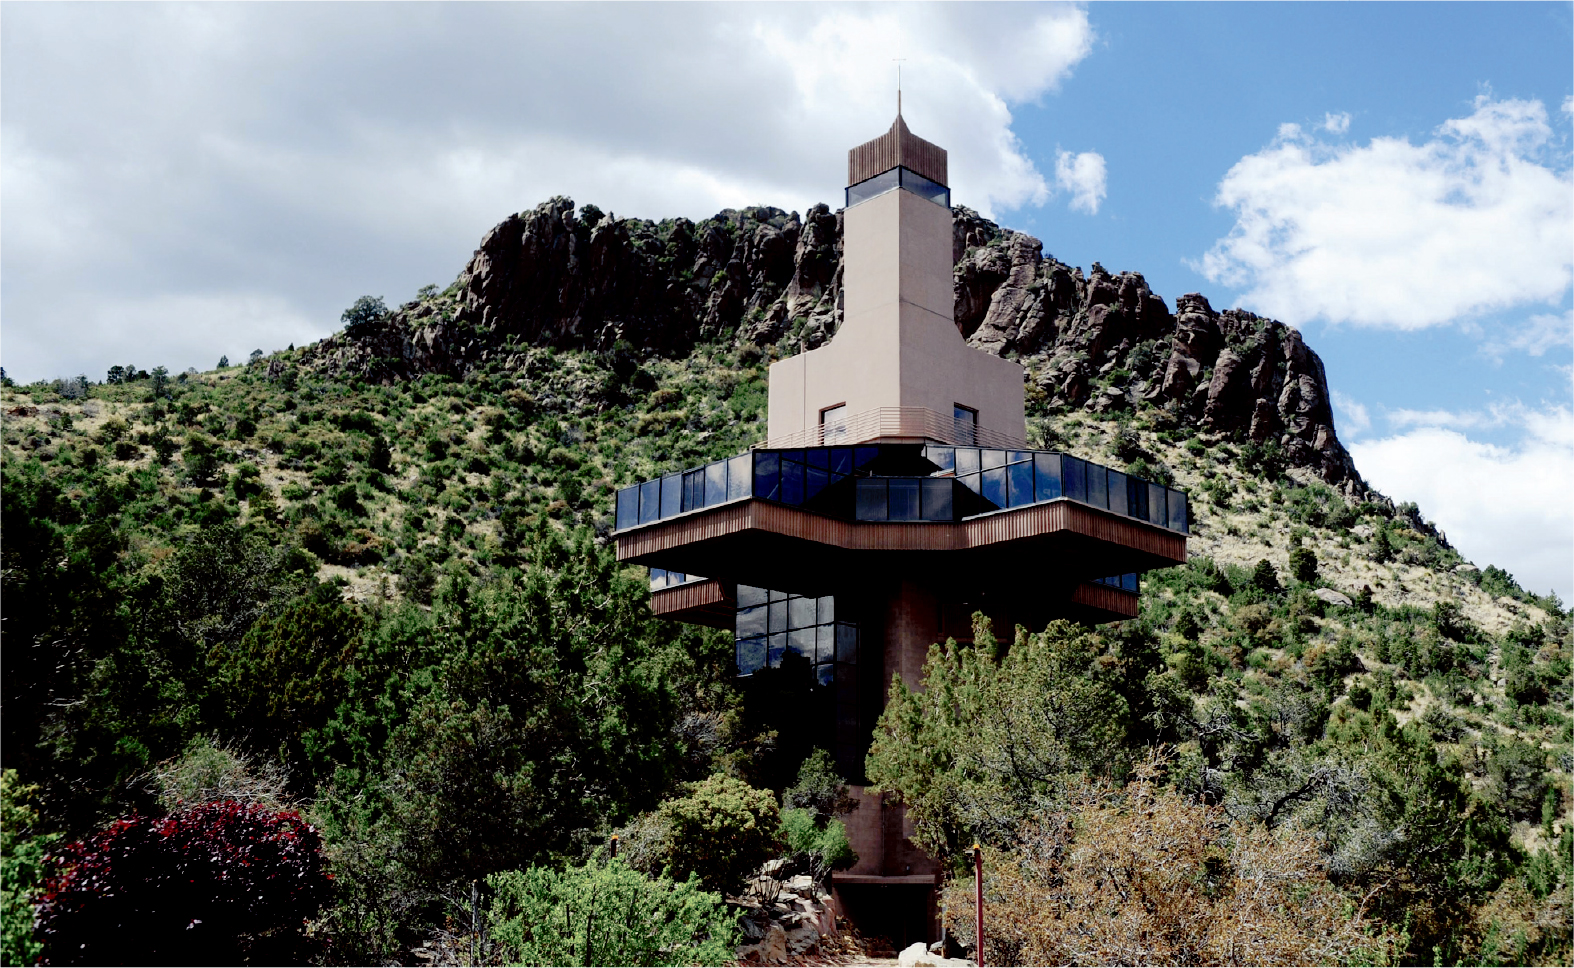 Tallest home in america located in prescott now for sale for Prescott architects